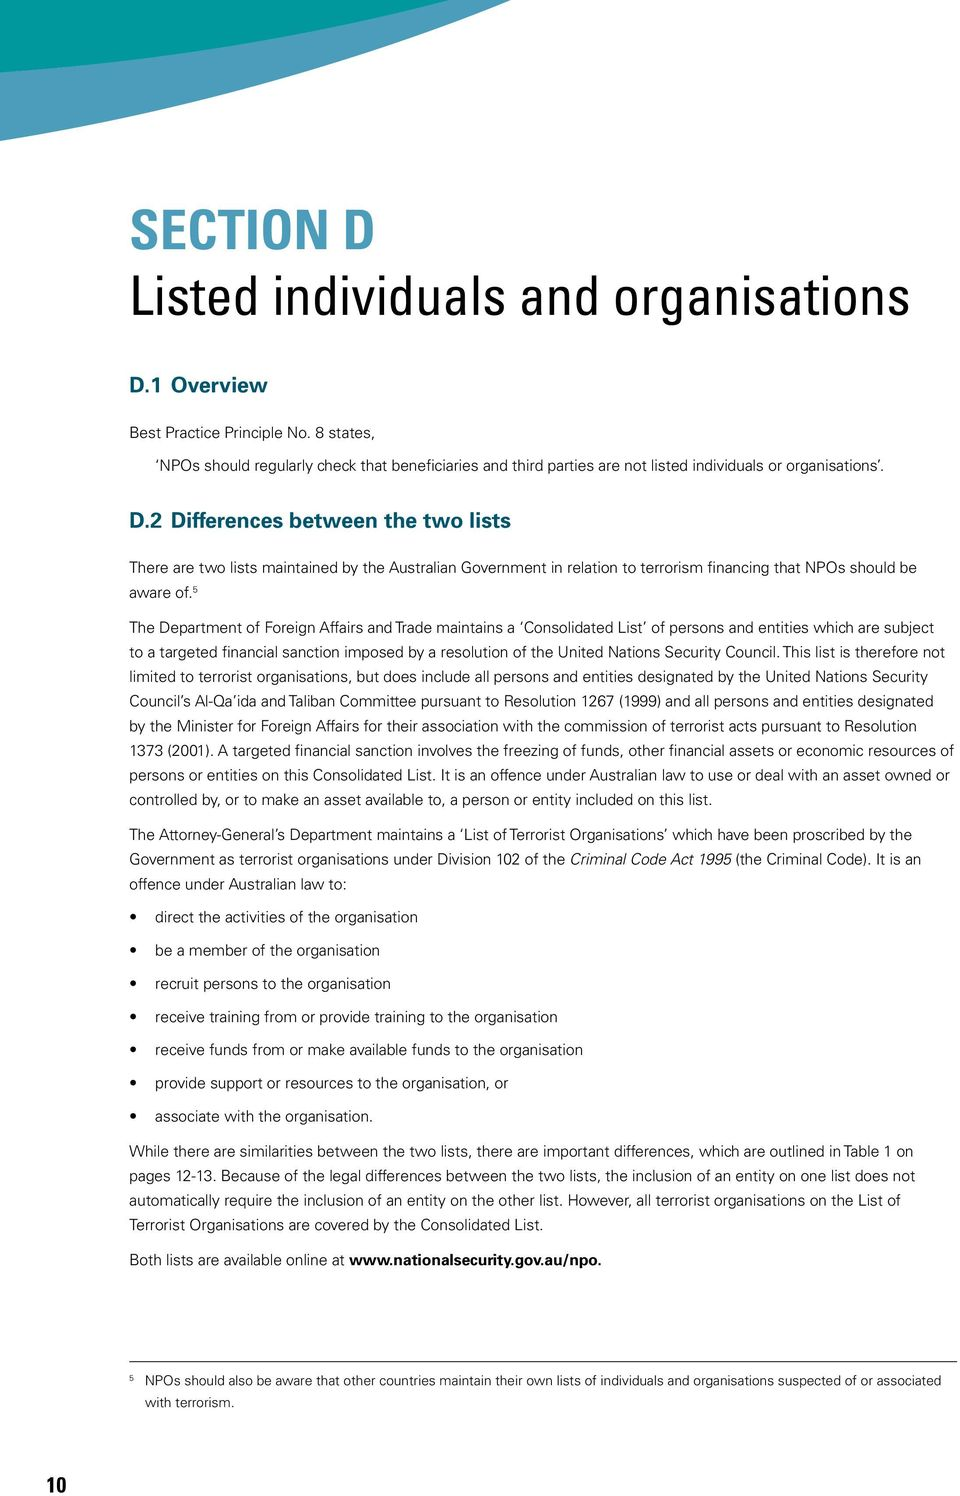 2 Differences between the two lists There are two lists maintained by the Australian Government in relation to terrorism financing that NPOs should be aware of.